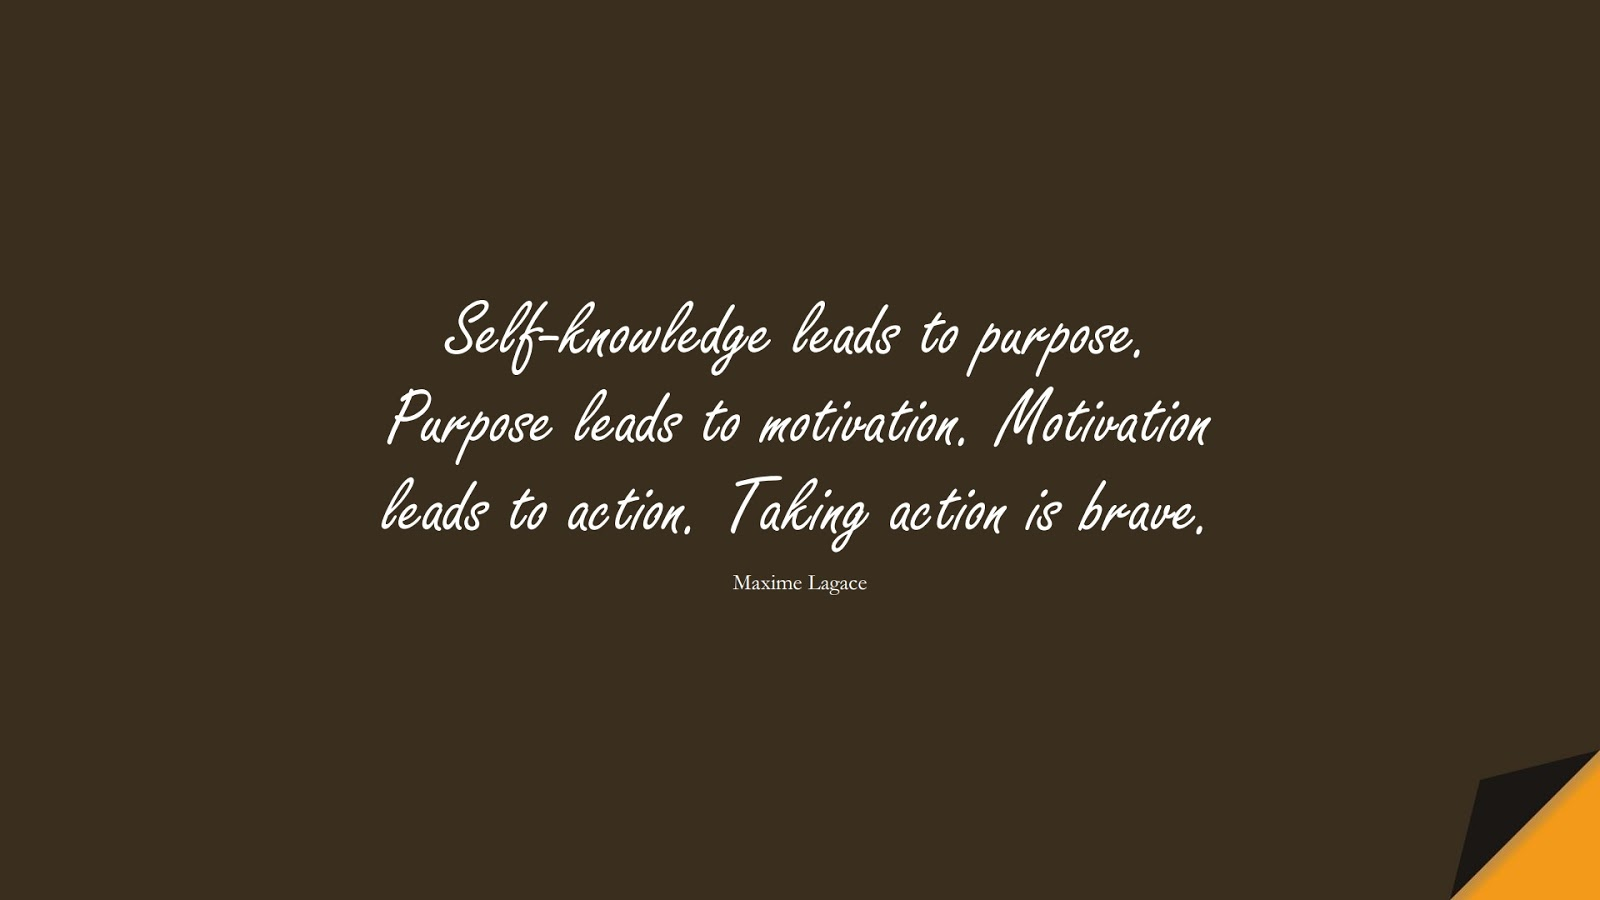 Self-knowledge leads to purpose. Purpose leads to motivation. Motivation leads to action. Taking action is brave. (Maxime Lagace);  #CourageQuotes